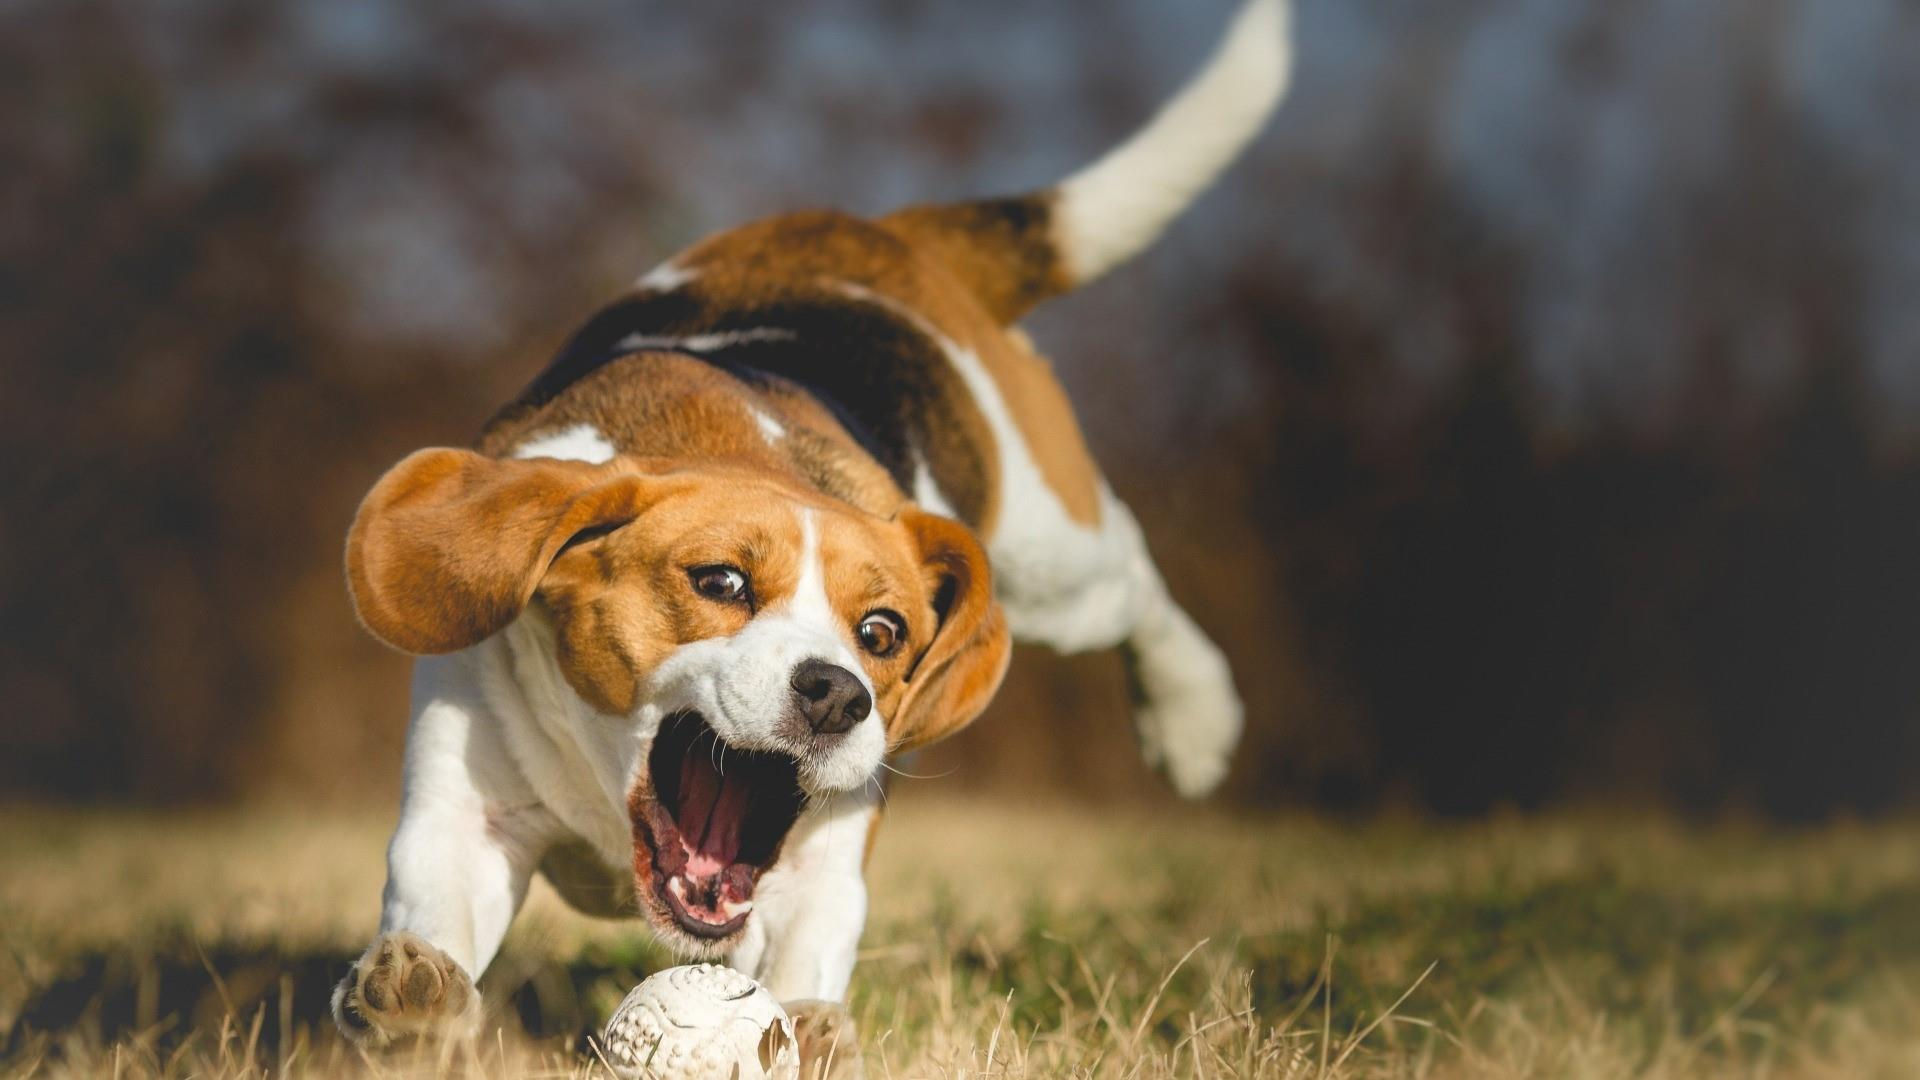 Beagle Wallpapers Top Free Beagle Backgrounds Wallpaperaccess